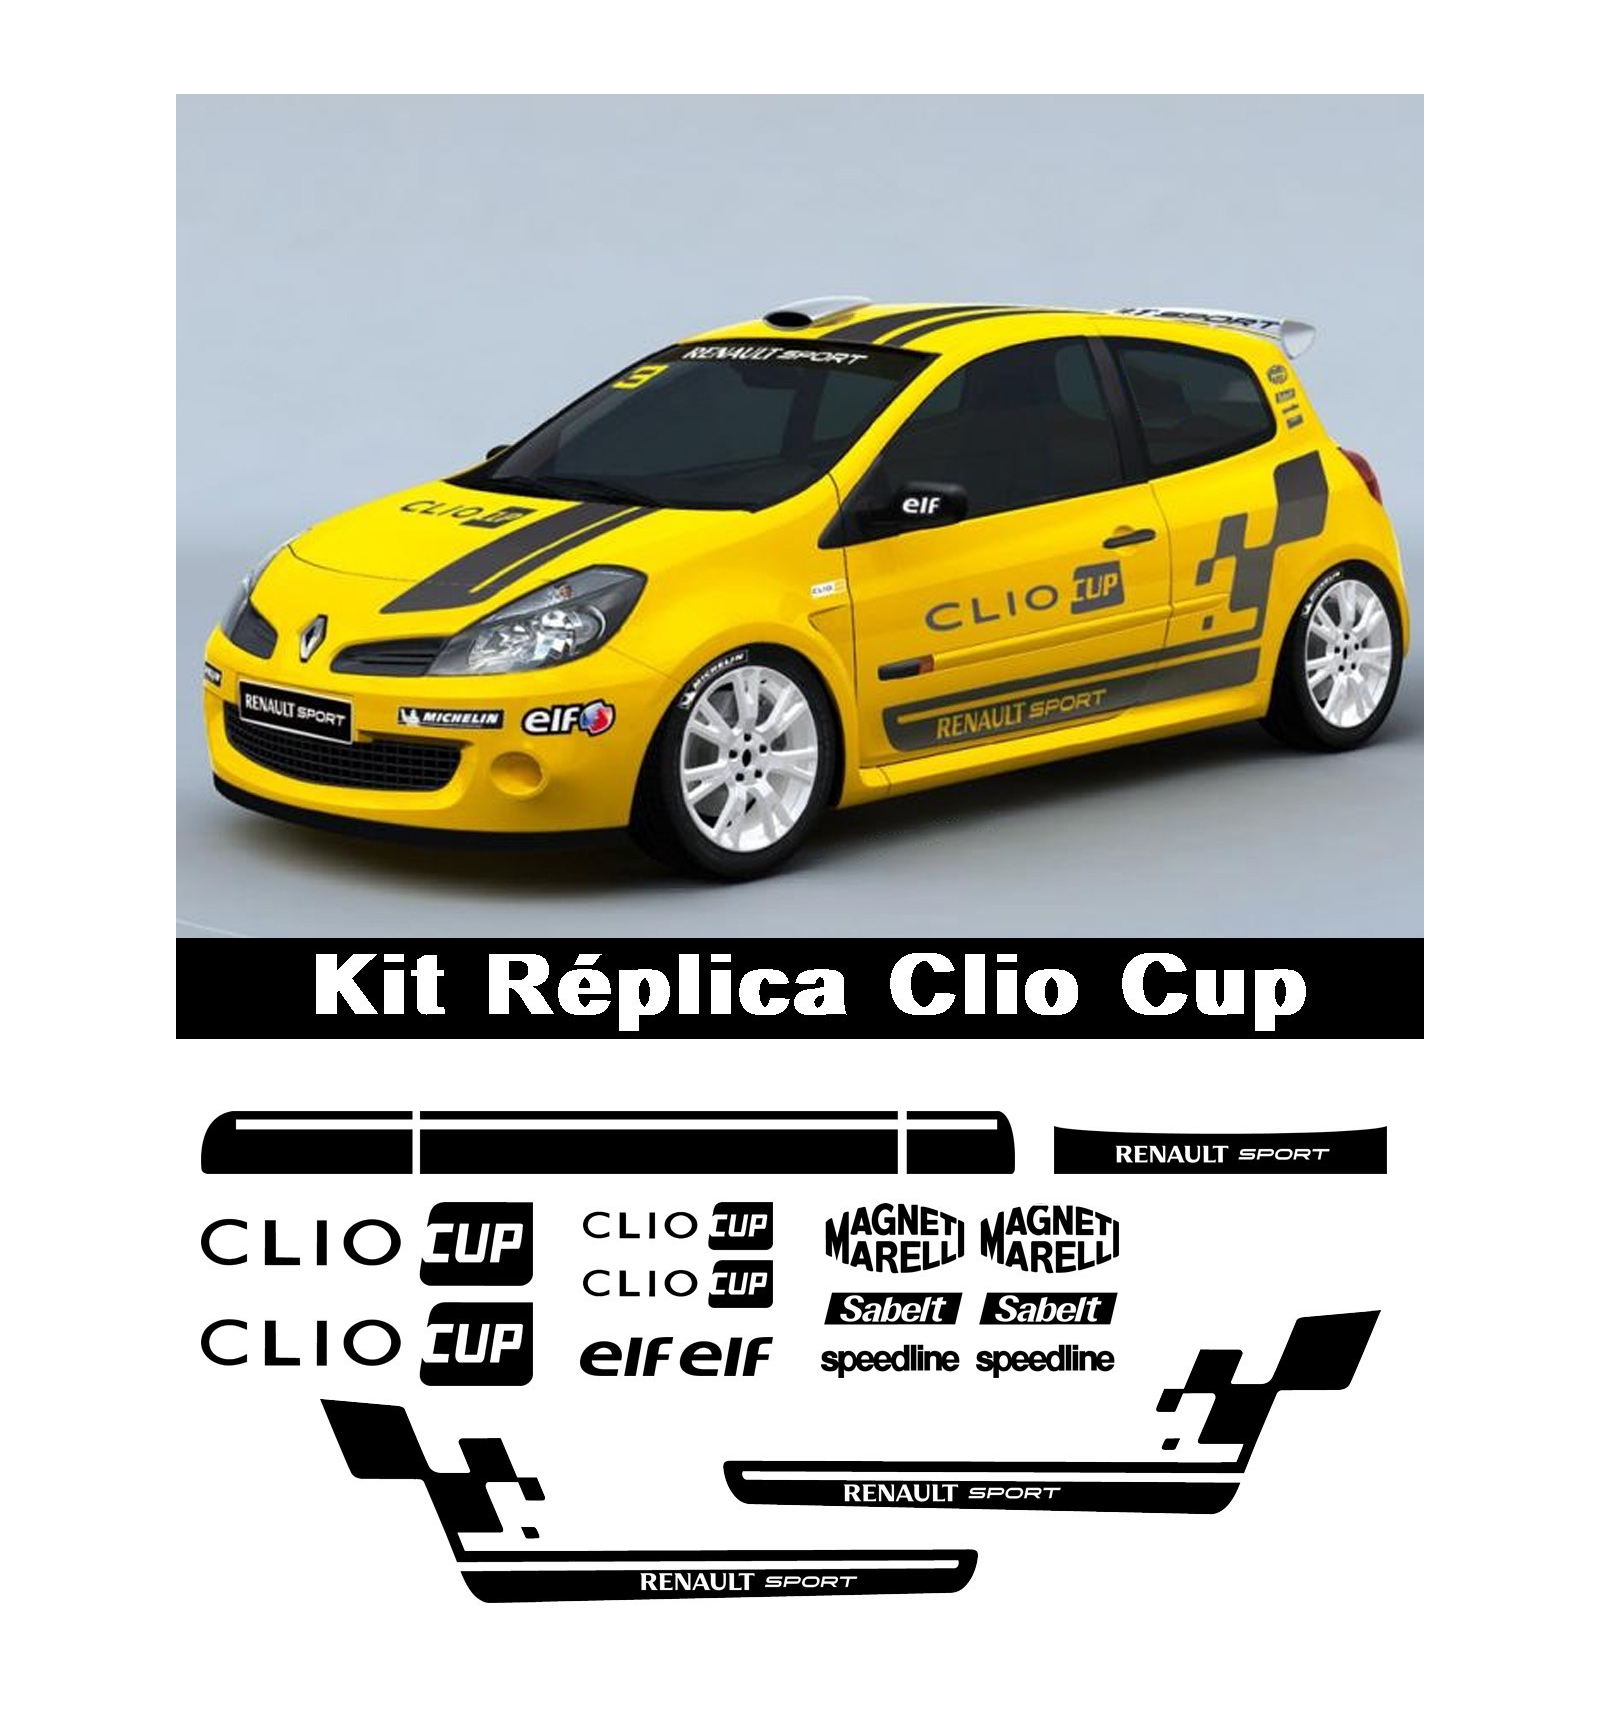 Renault Sport: Kit Replica Renault Sport Clio Cup